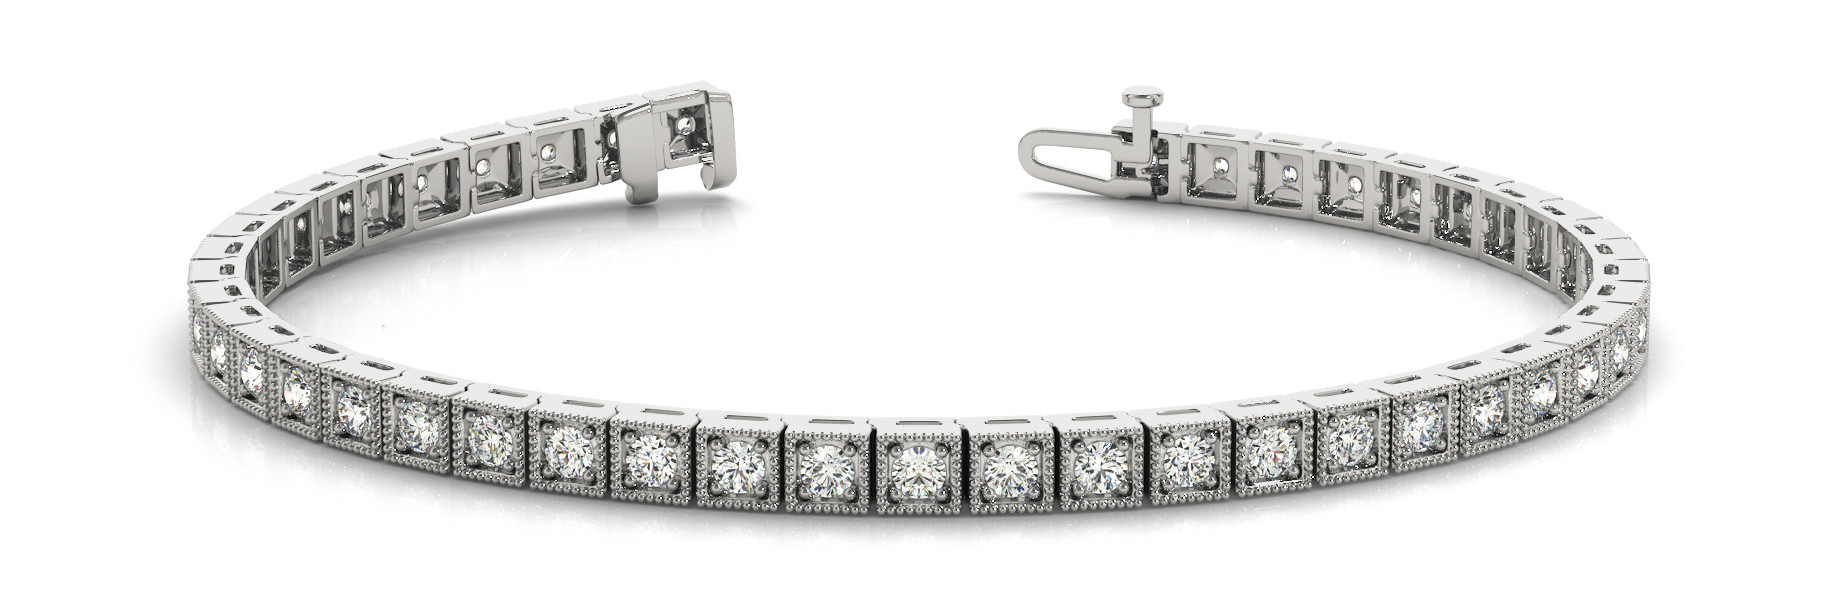 Bracelet In Line Prong Set